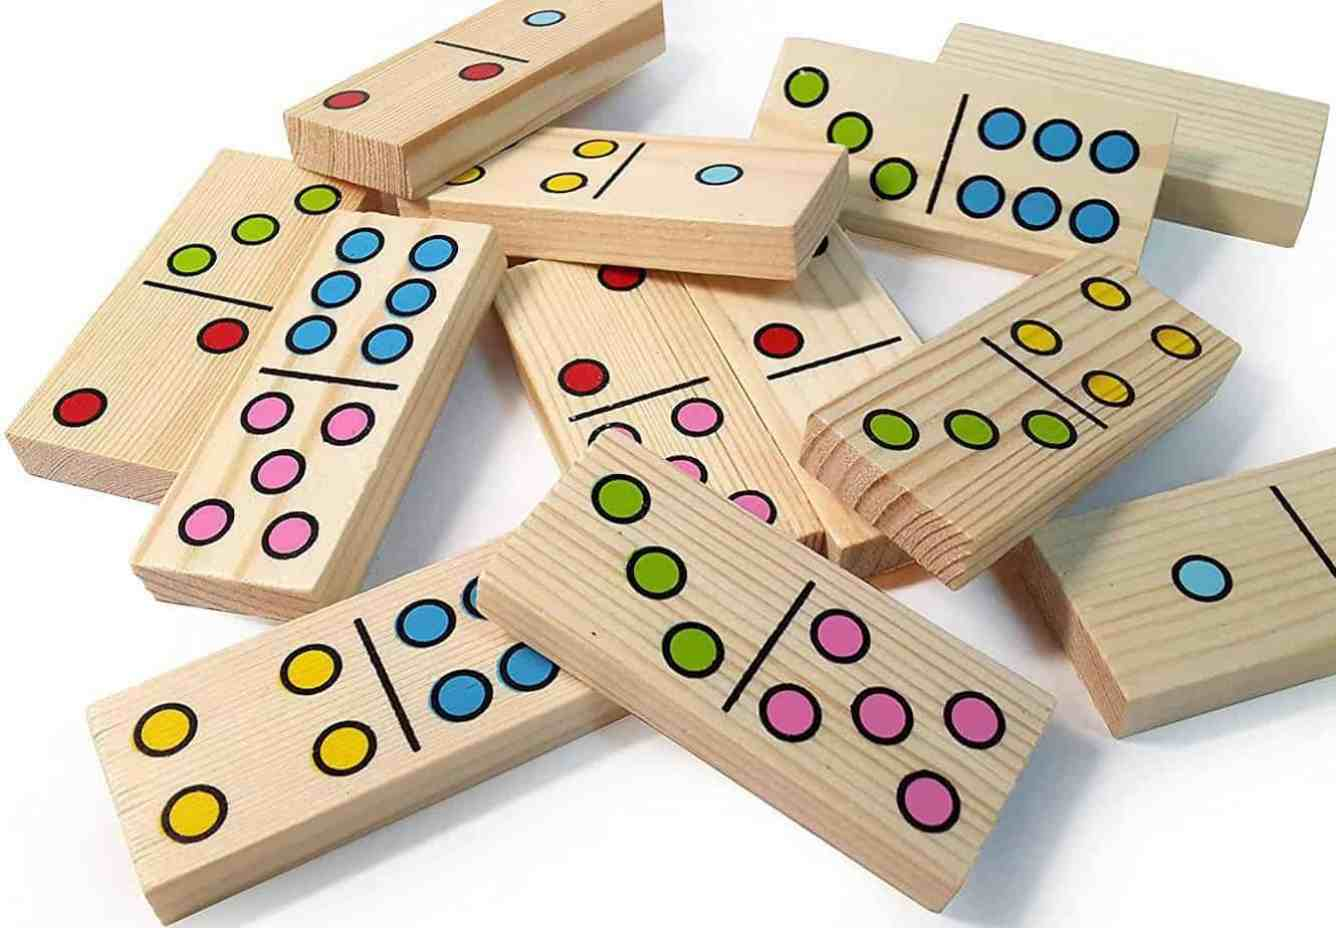 Dominoes - fun ways to practice math at home